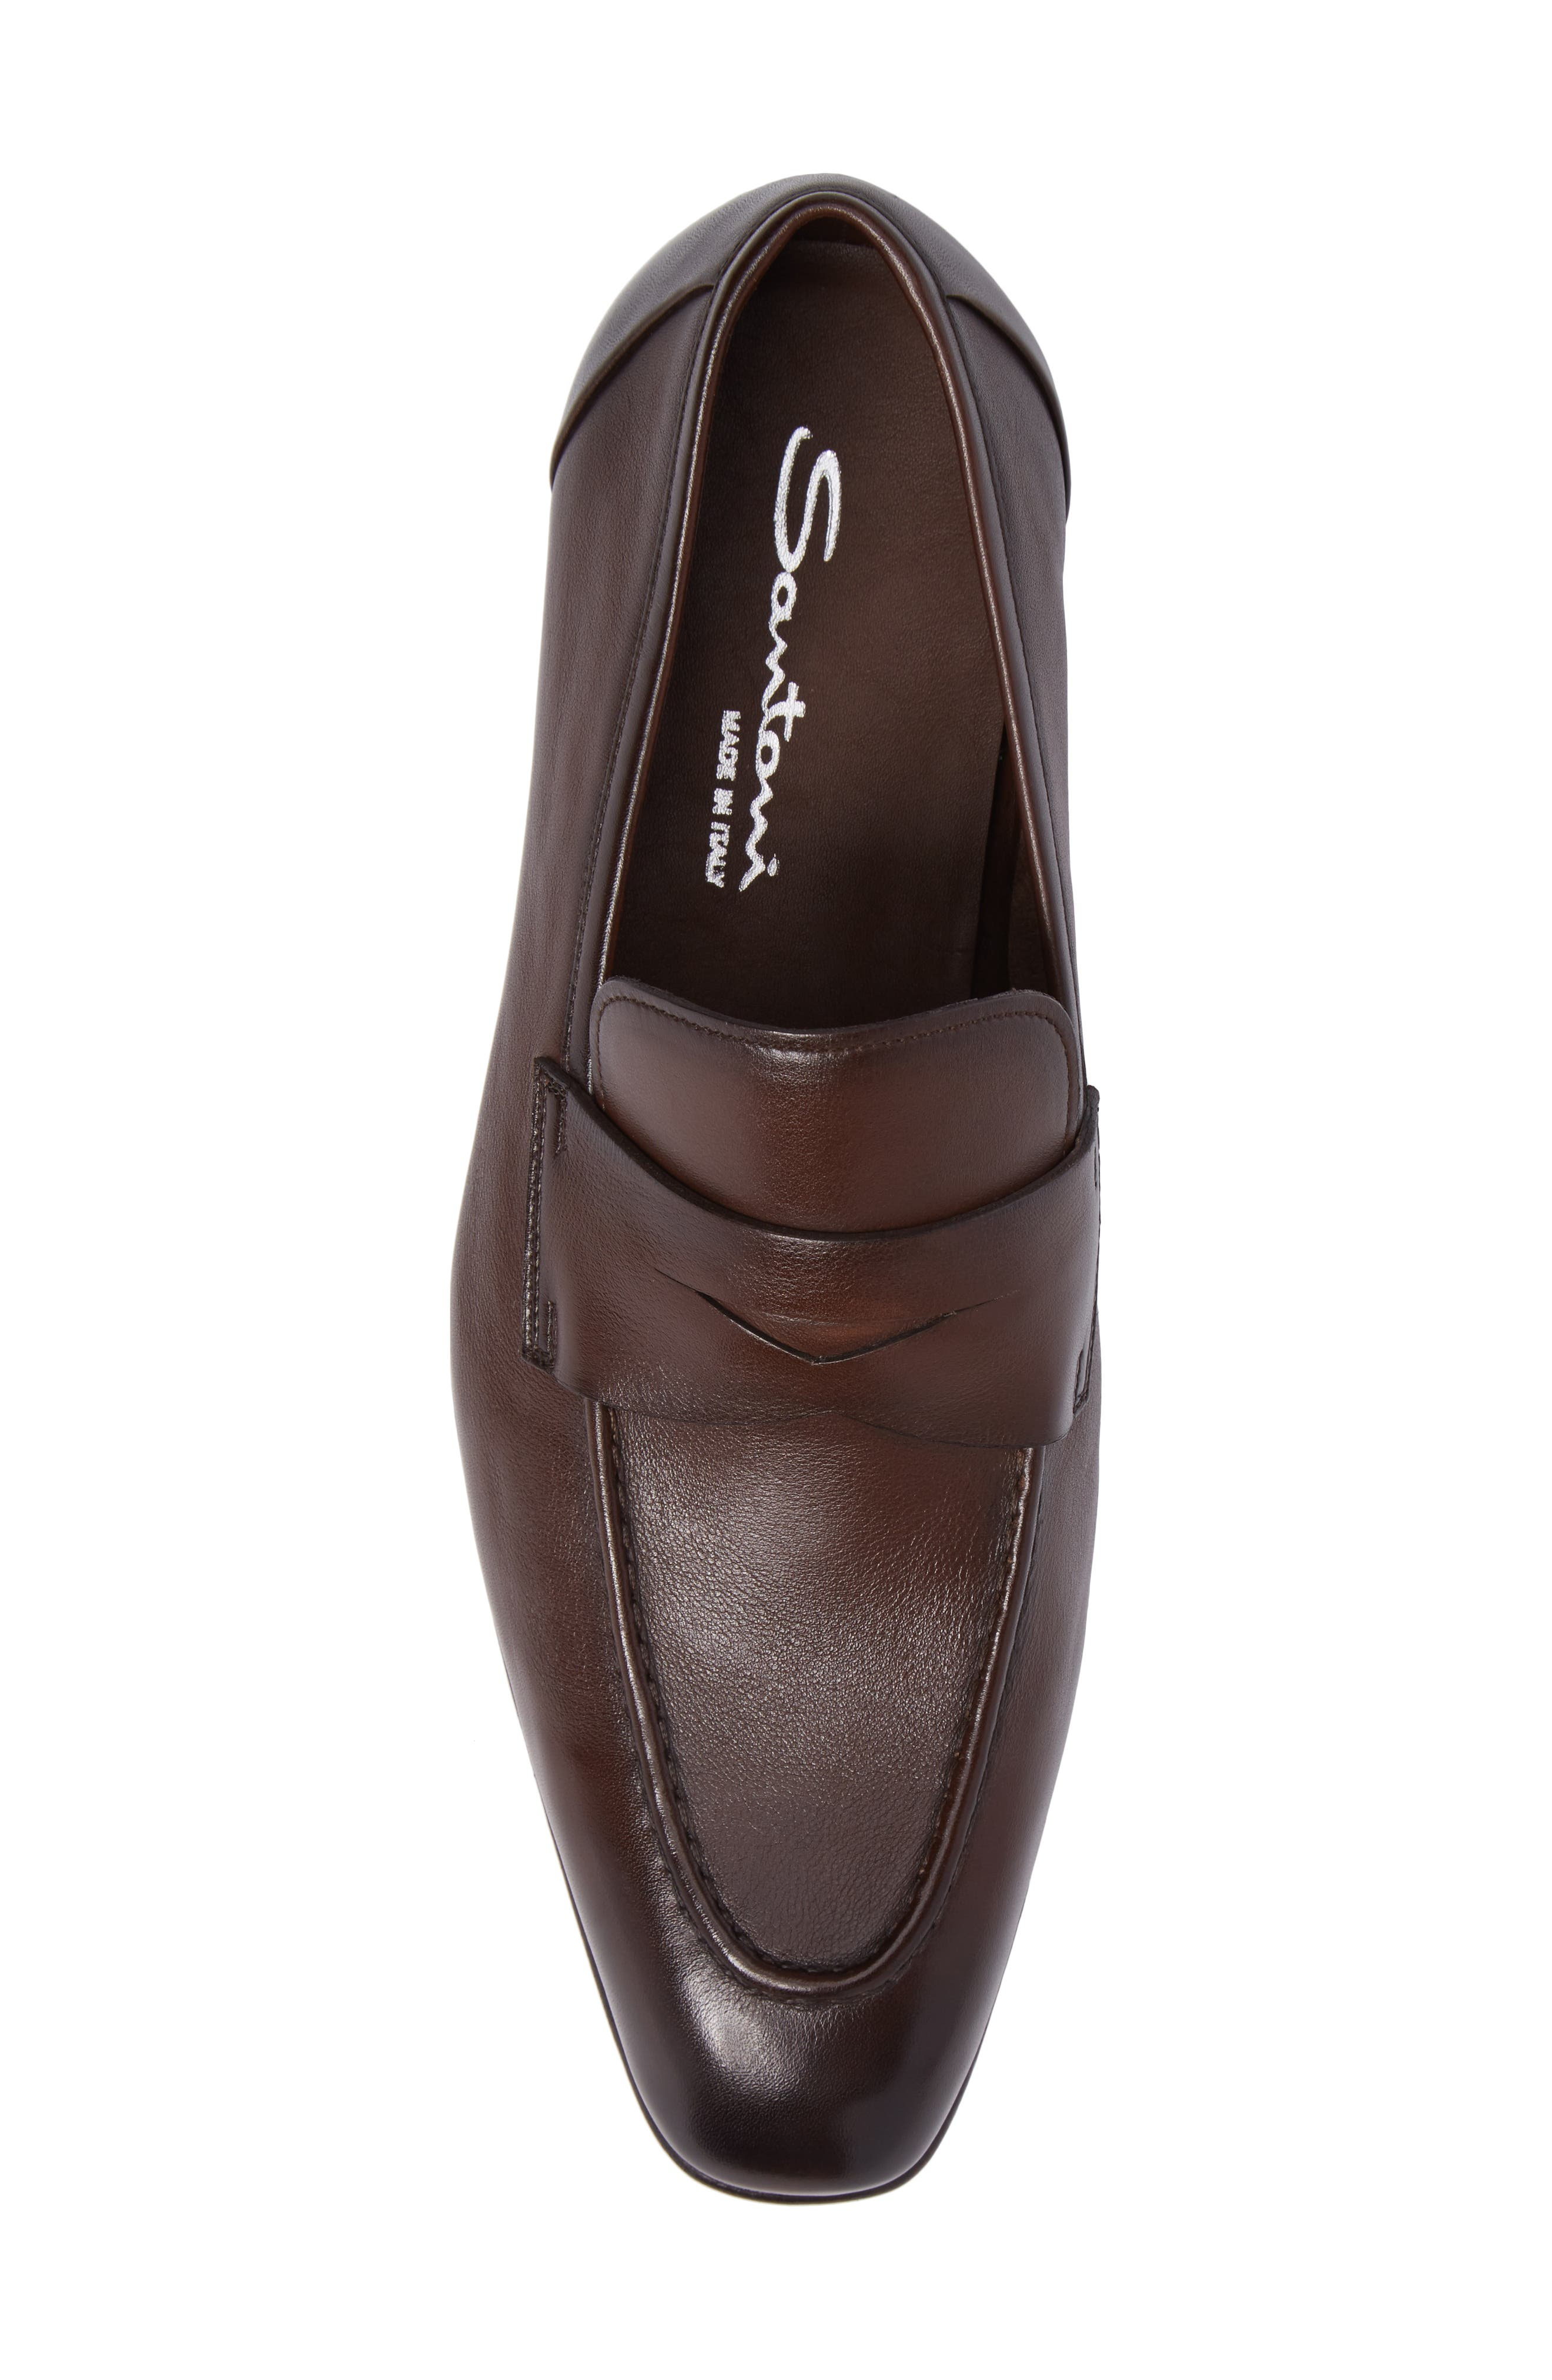 SANTONI, Gannon Penny Loafer, Alternate thumbnail 5, color, BROWN